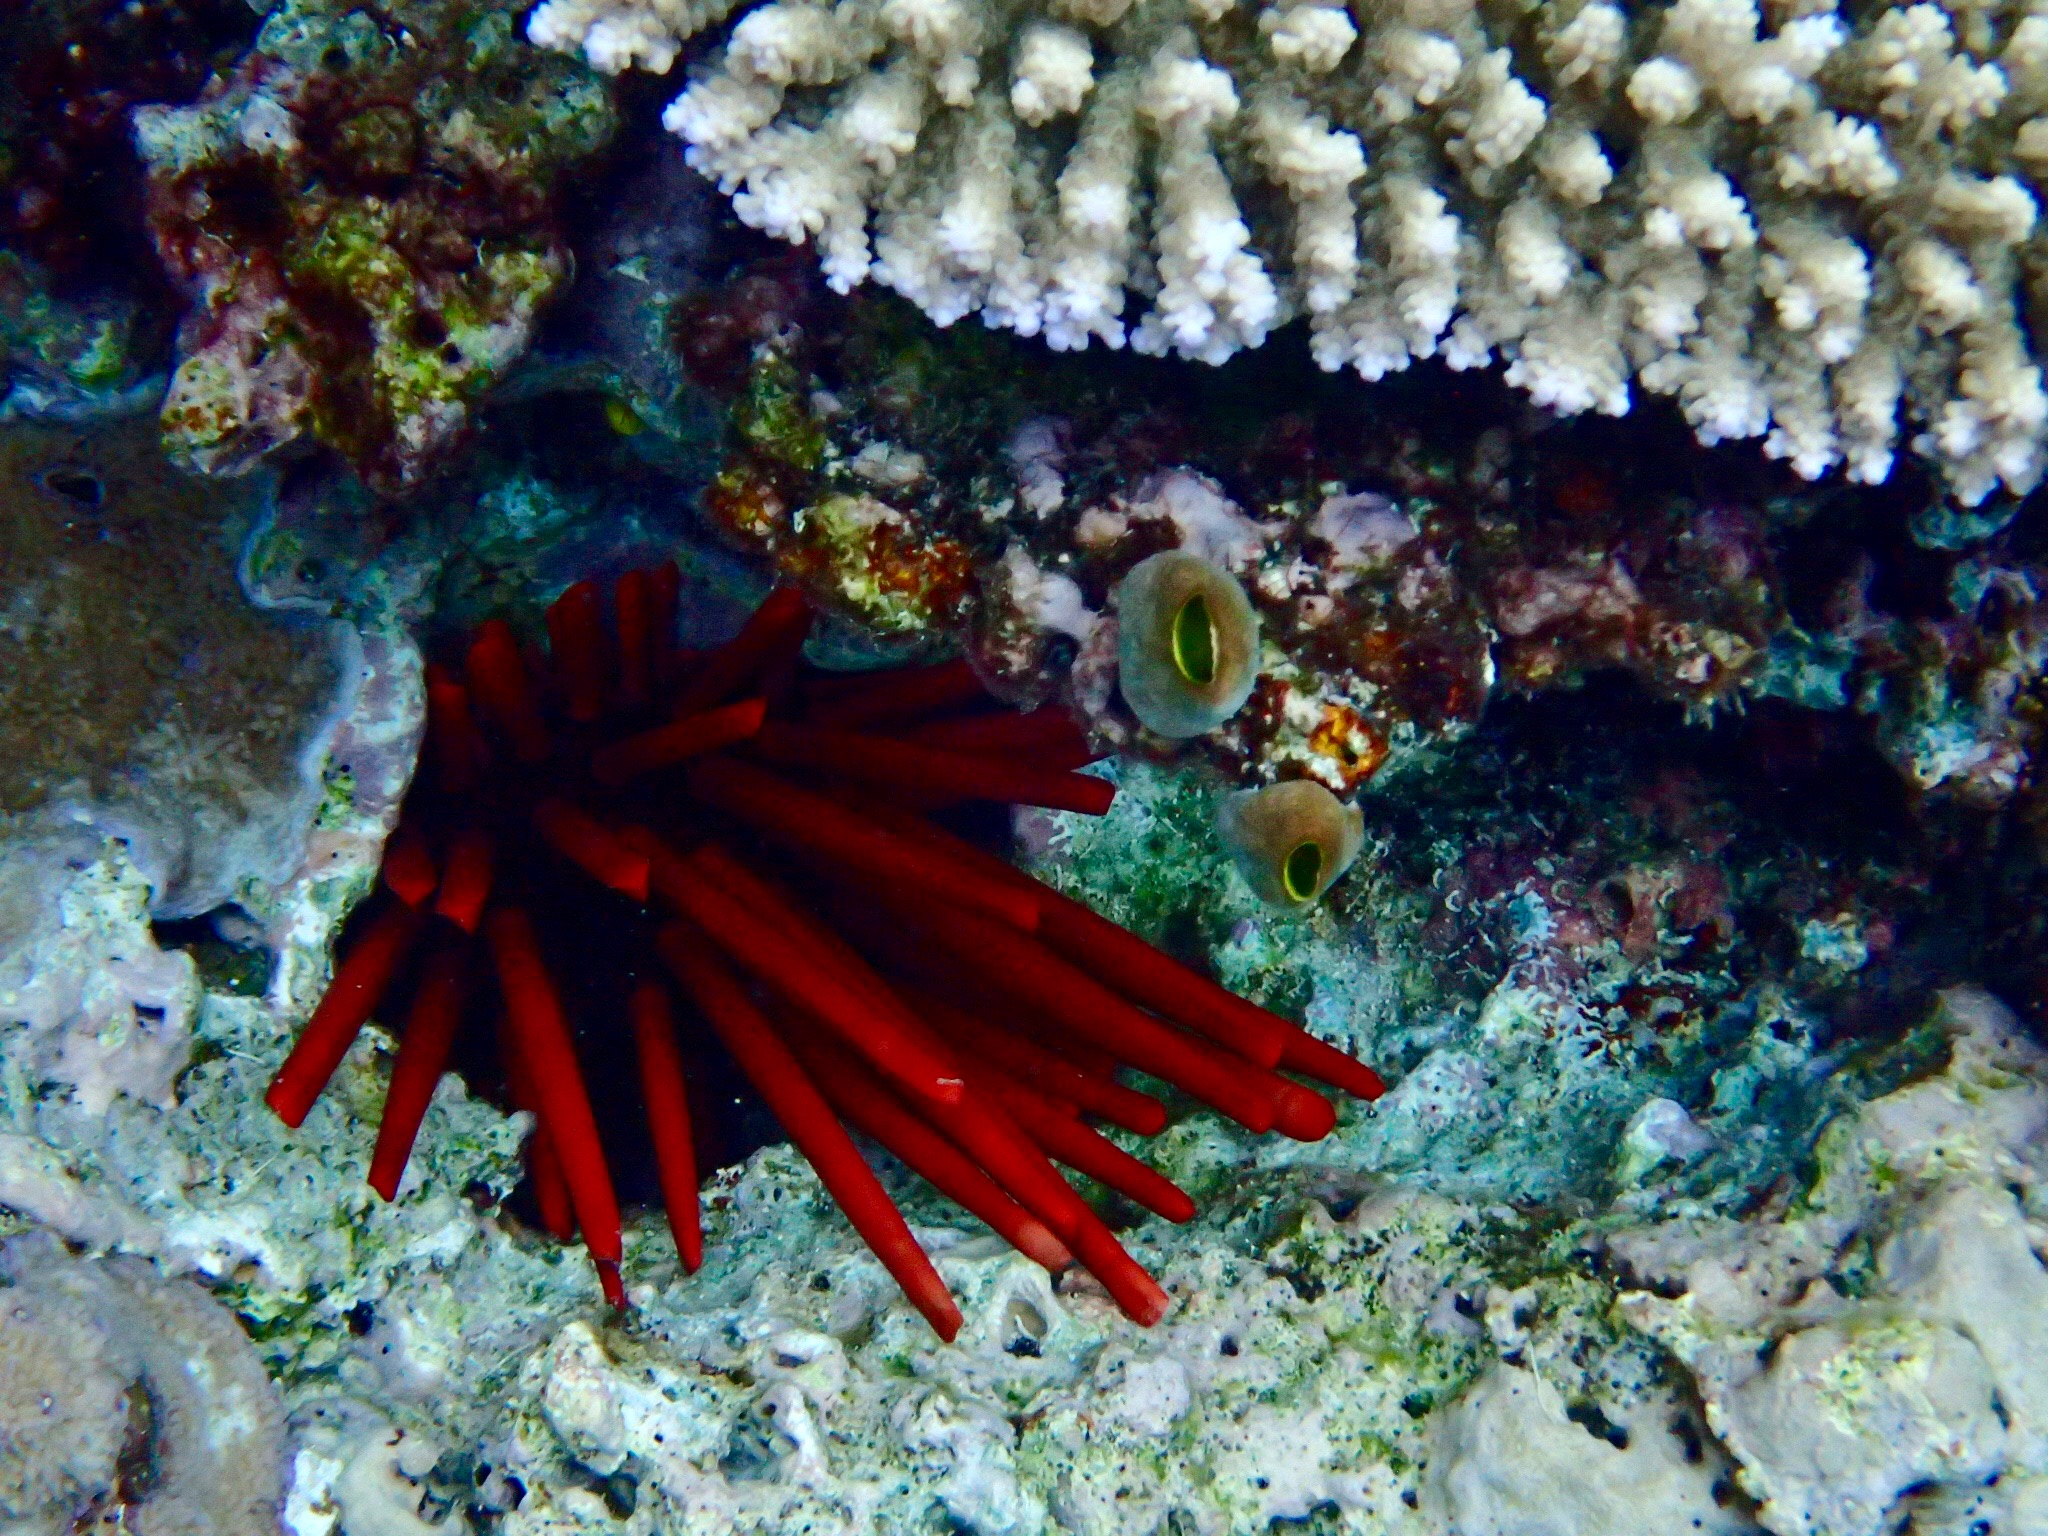 Red is such a stunning colour under water. Sea urchins have vibrant red spines.